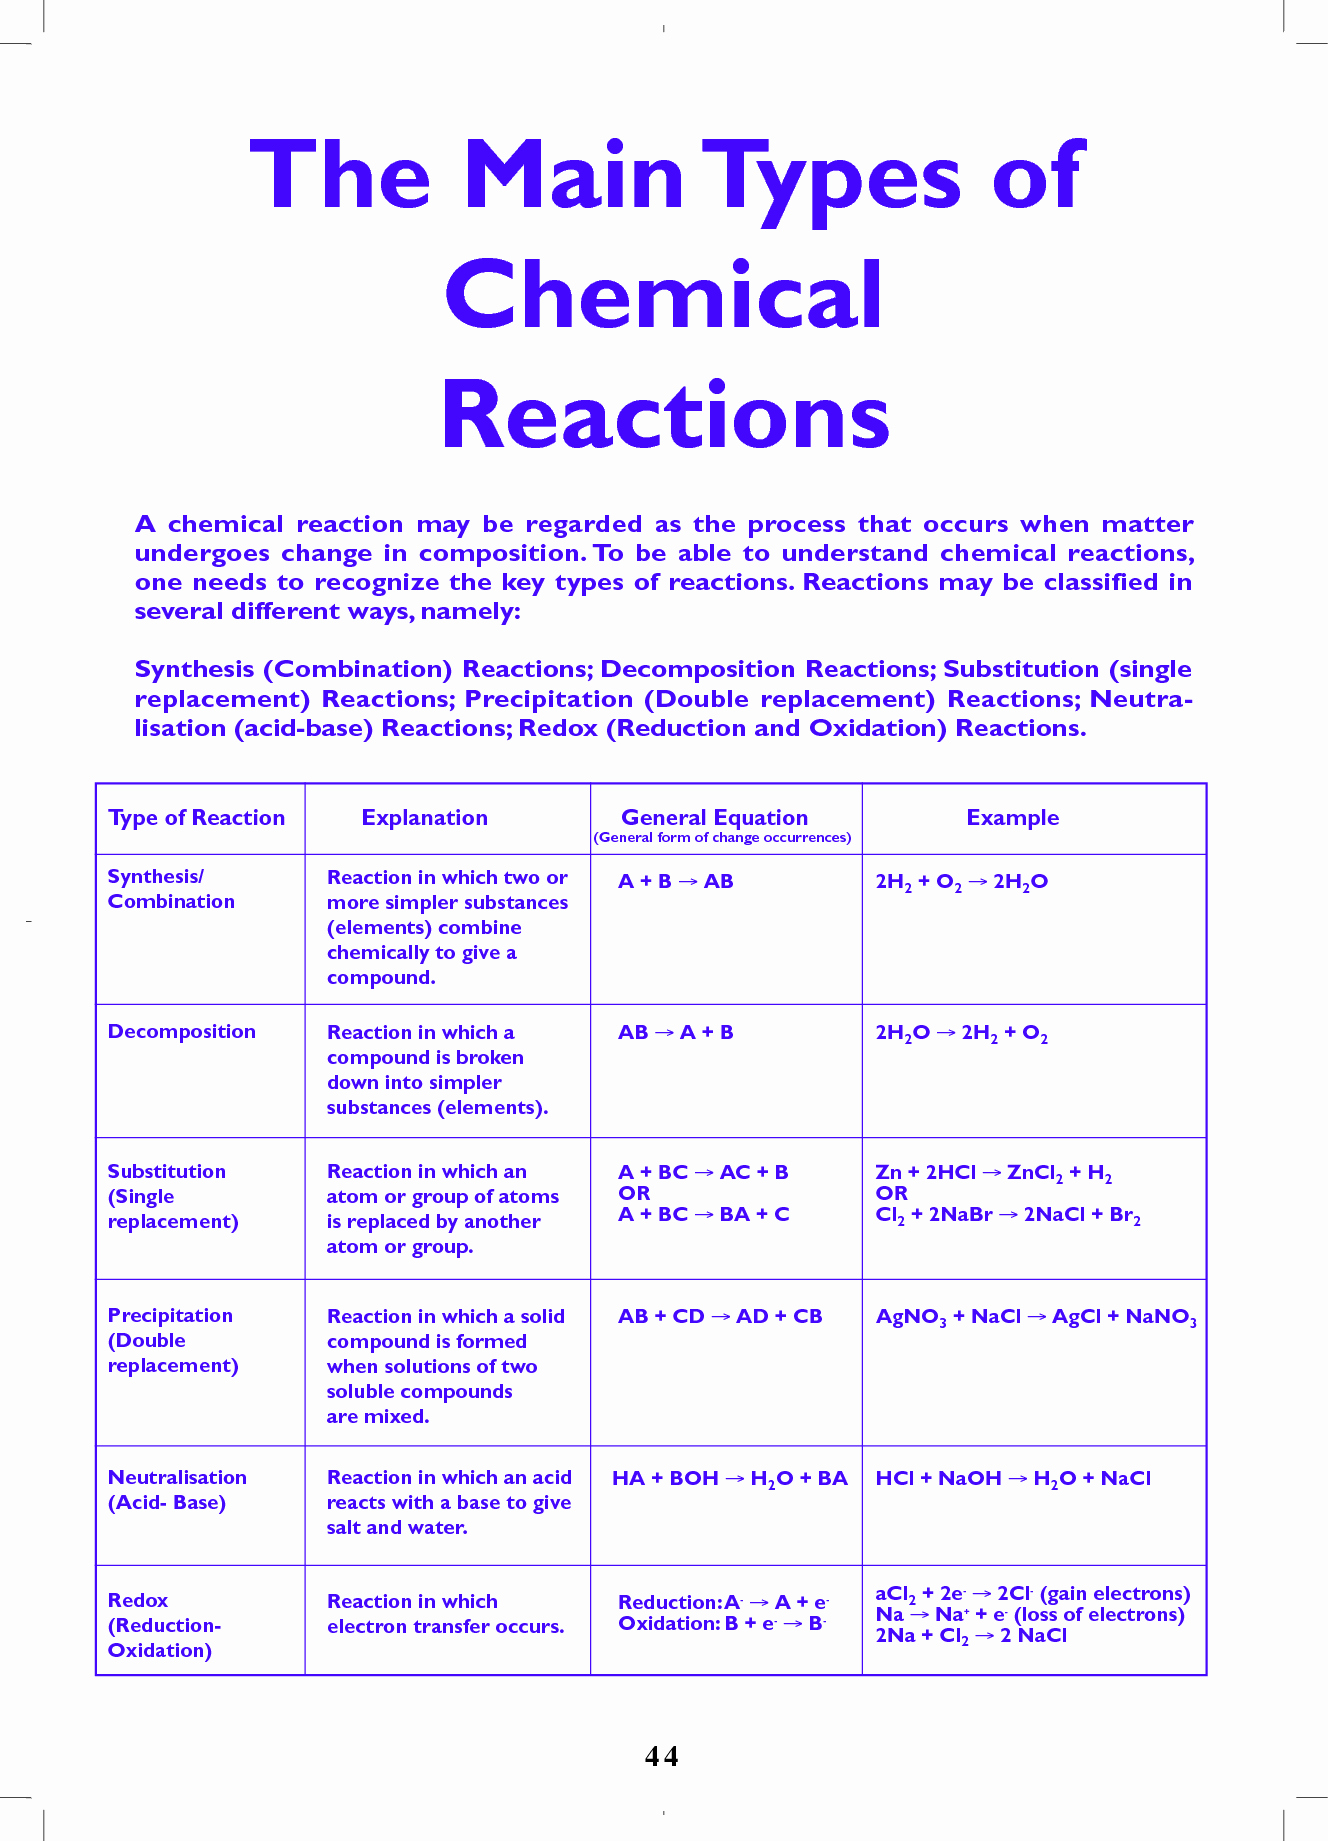 Chemical Reactions Types Worksheet Awesome Types Of Chemical Reactions